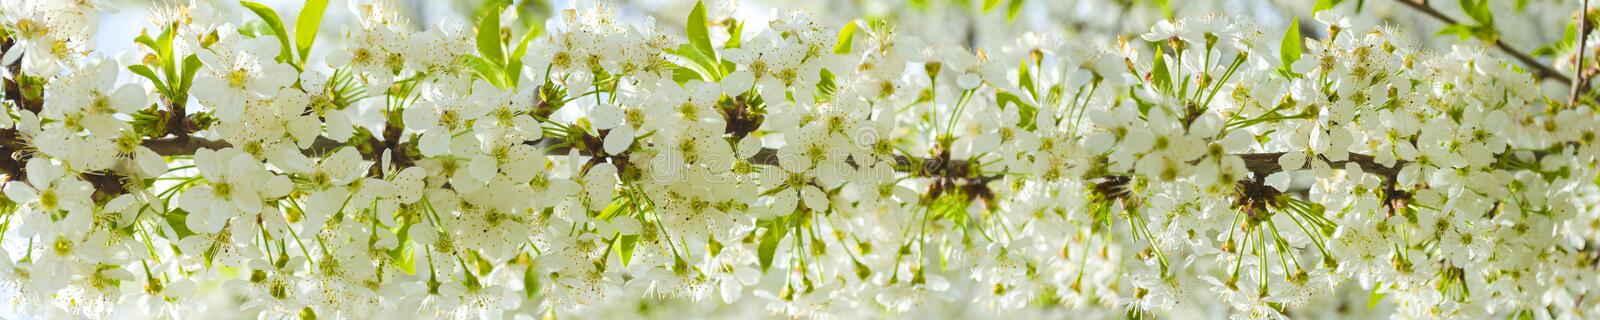 White cherry blossoms in spring sun with blue sky. stock photography